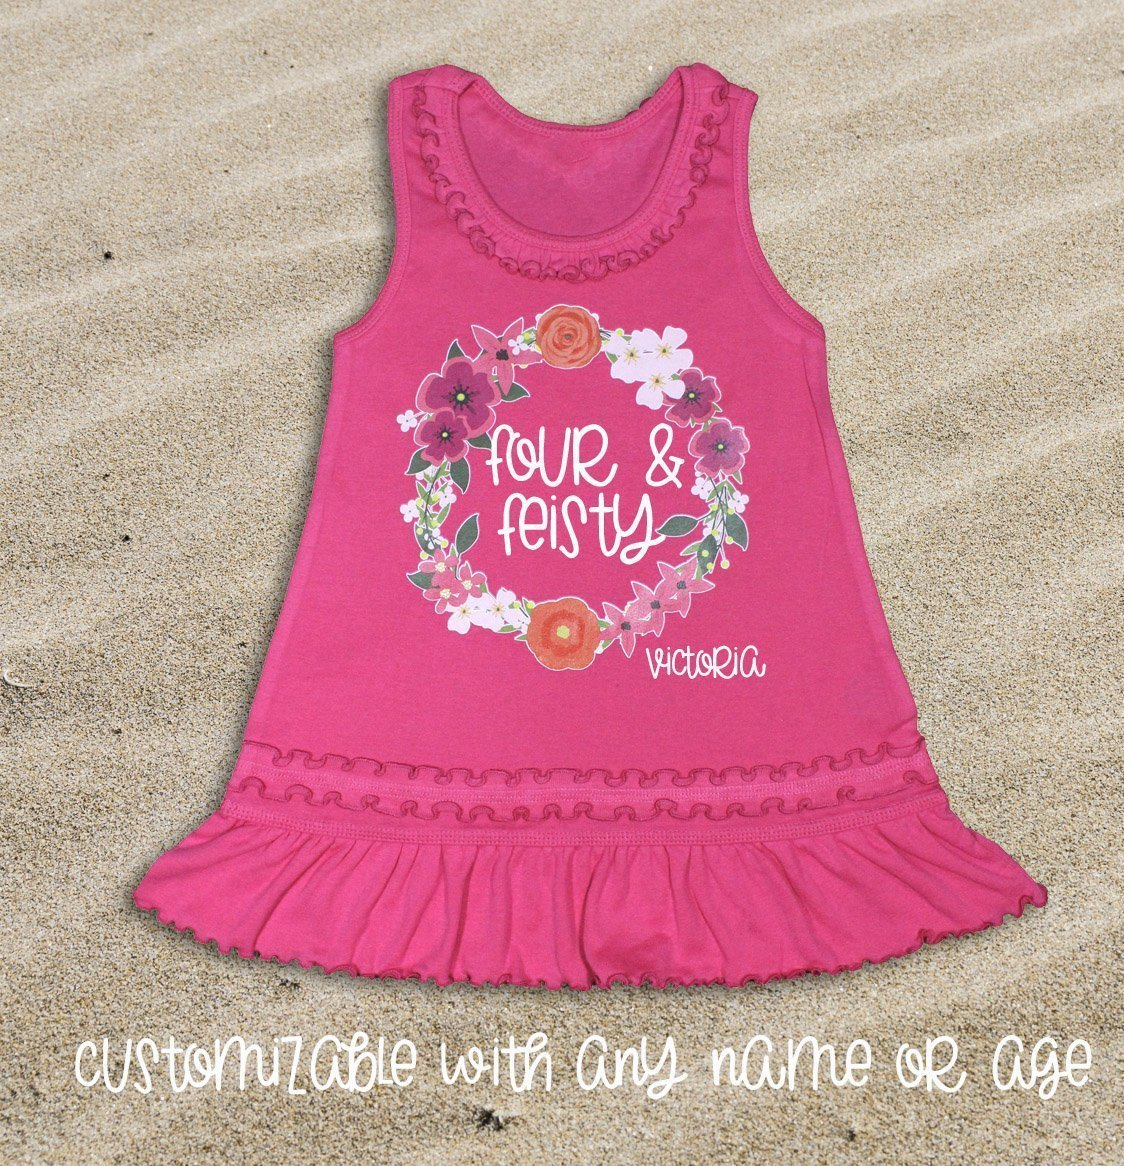 Girl 4th Birthday Outfit Girl's Fourth Birthday Dress Four and Feisty Dress Girl Fourth Birthday Outfit Four Dress Girl's Birthday Dress